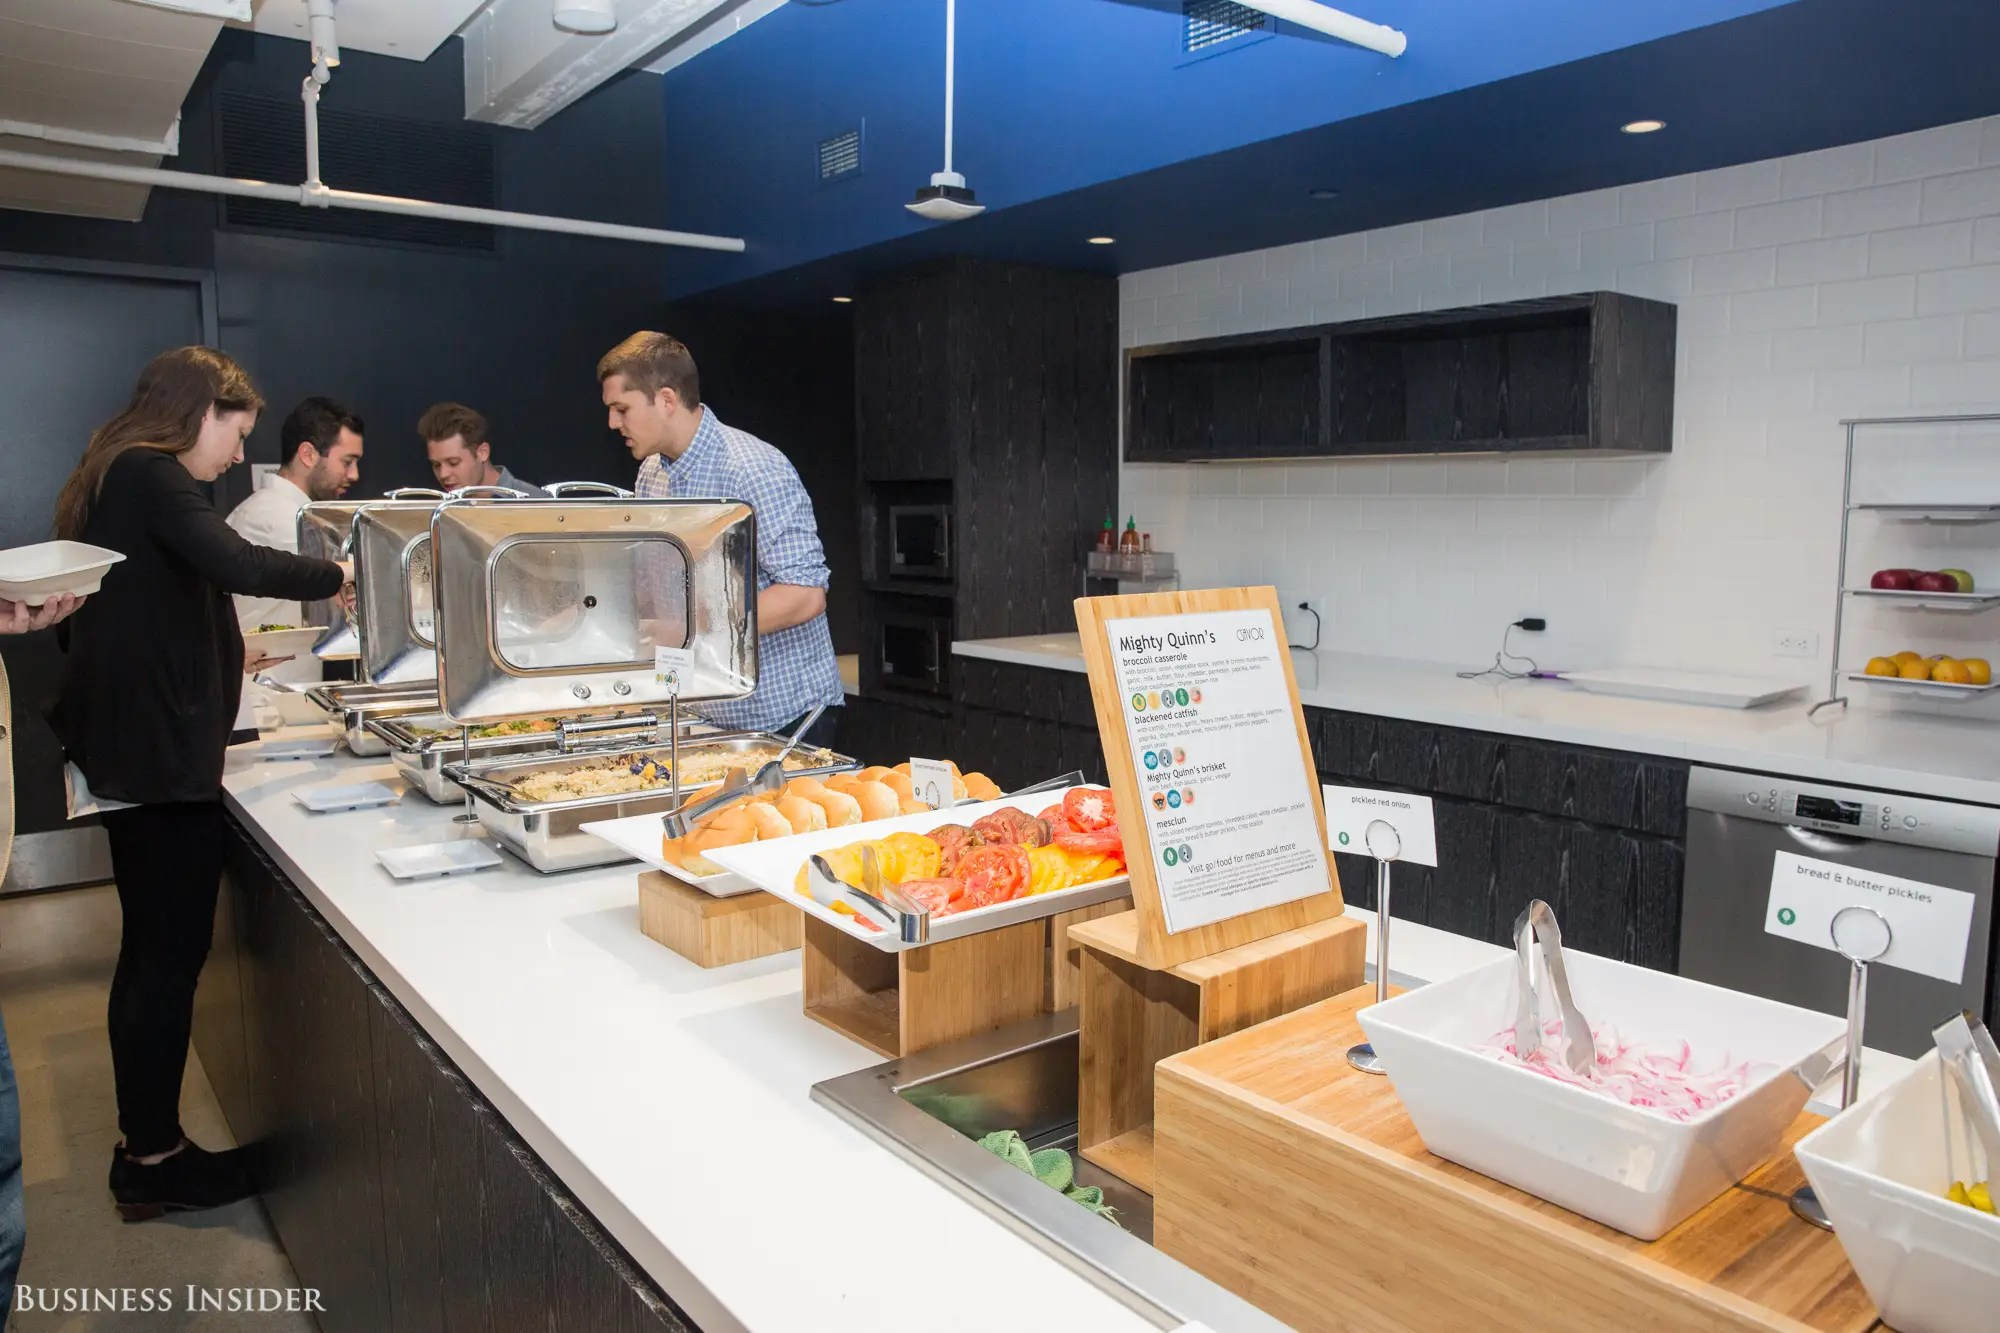 Next we headed to the kitchen. LinkedIn employees enjoy free, catered breakfasts and lunches every day. The company also offers spontaneous treats, like pop-up poke bars and cookie decorating stations.